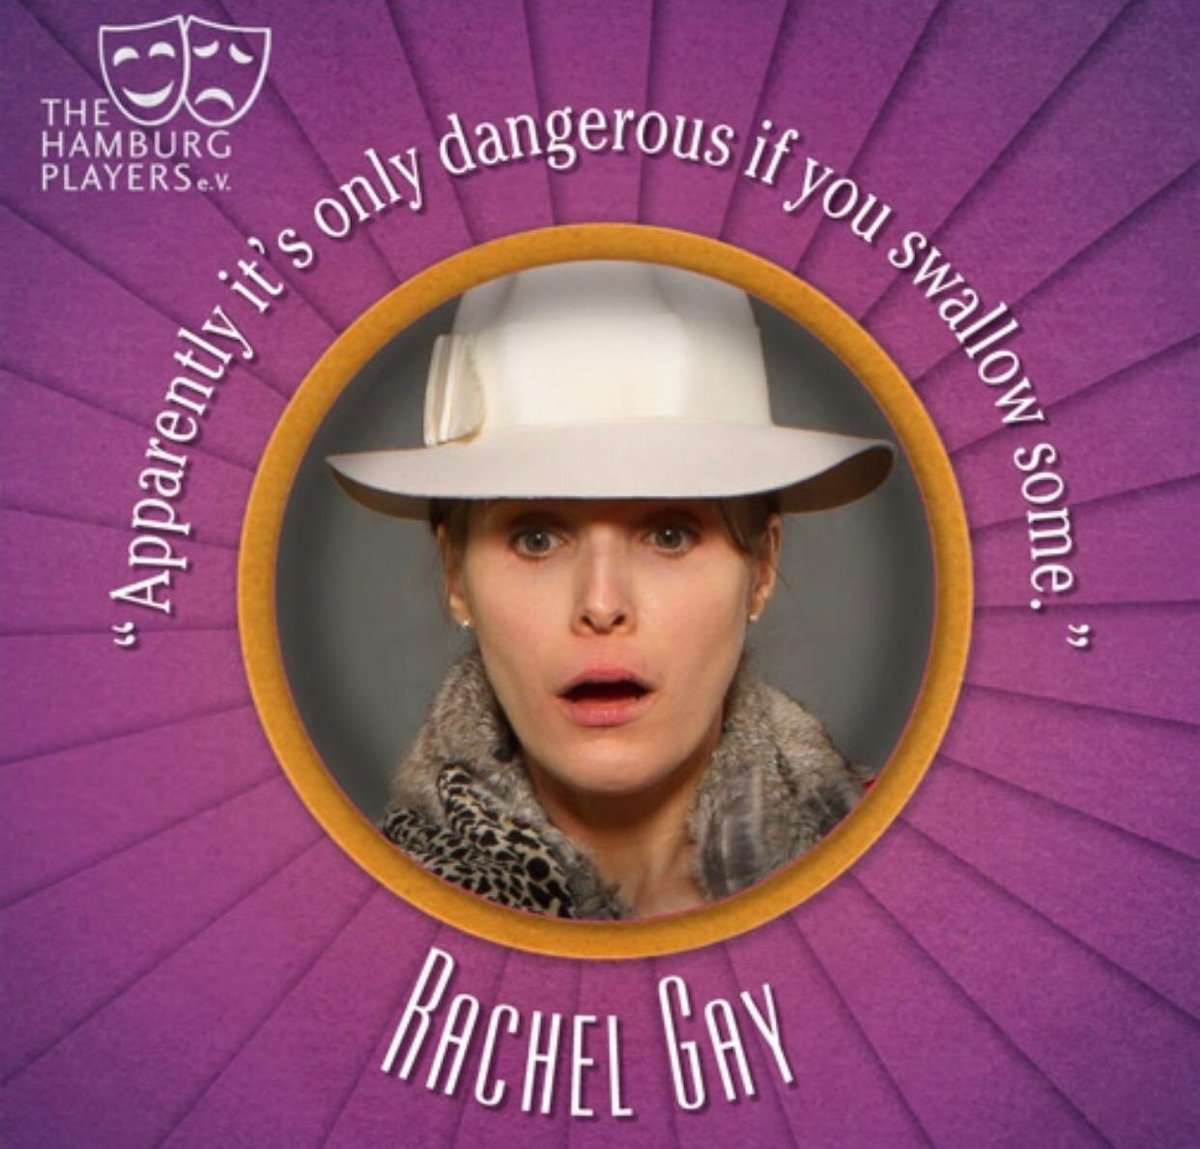 Another member of staff at Christophe et Cie, Rachel finds herself amongst the dangerous hierarchy of competitive sales ladies. And the frightful truth will, eventually, have to be swallowed... 13-23 February http://www.hamburgplayers.de/current-production… #theatre #deathinhighheels #theaterinhamburg pic.twitter.com/nf7aZMqrLt